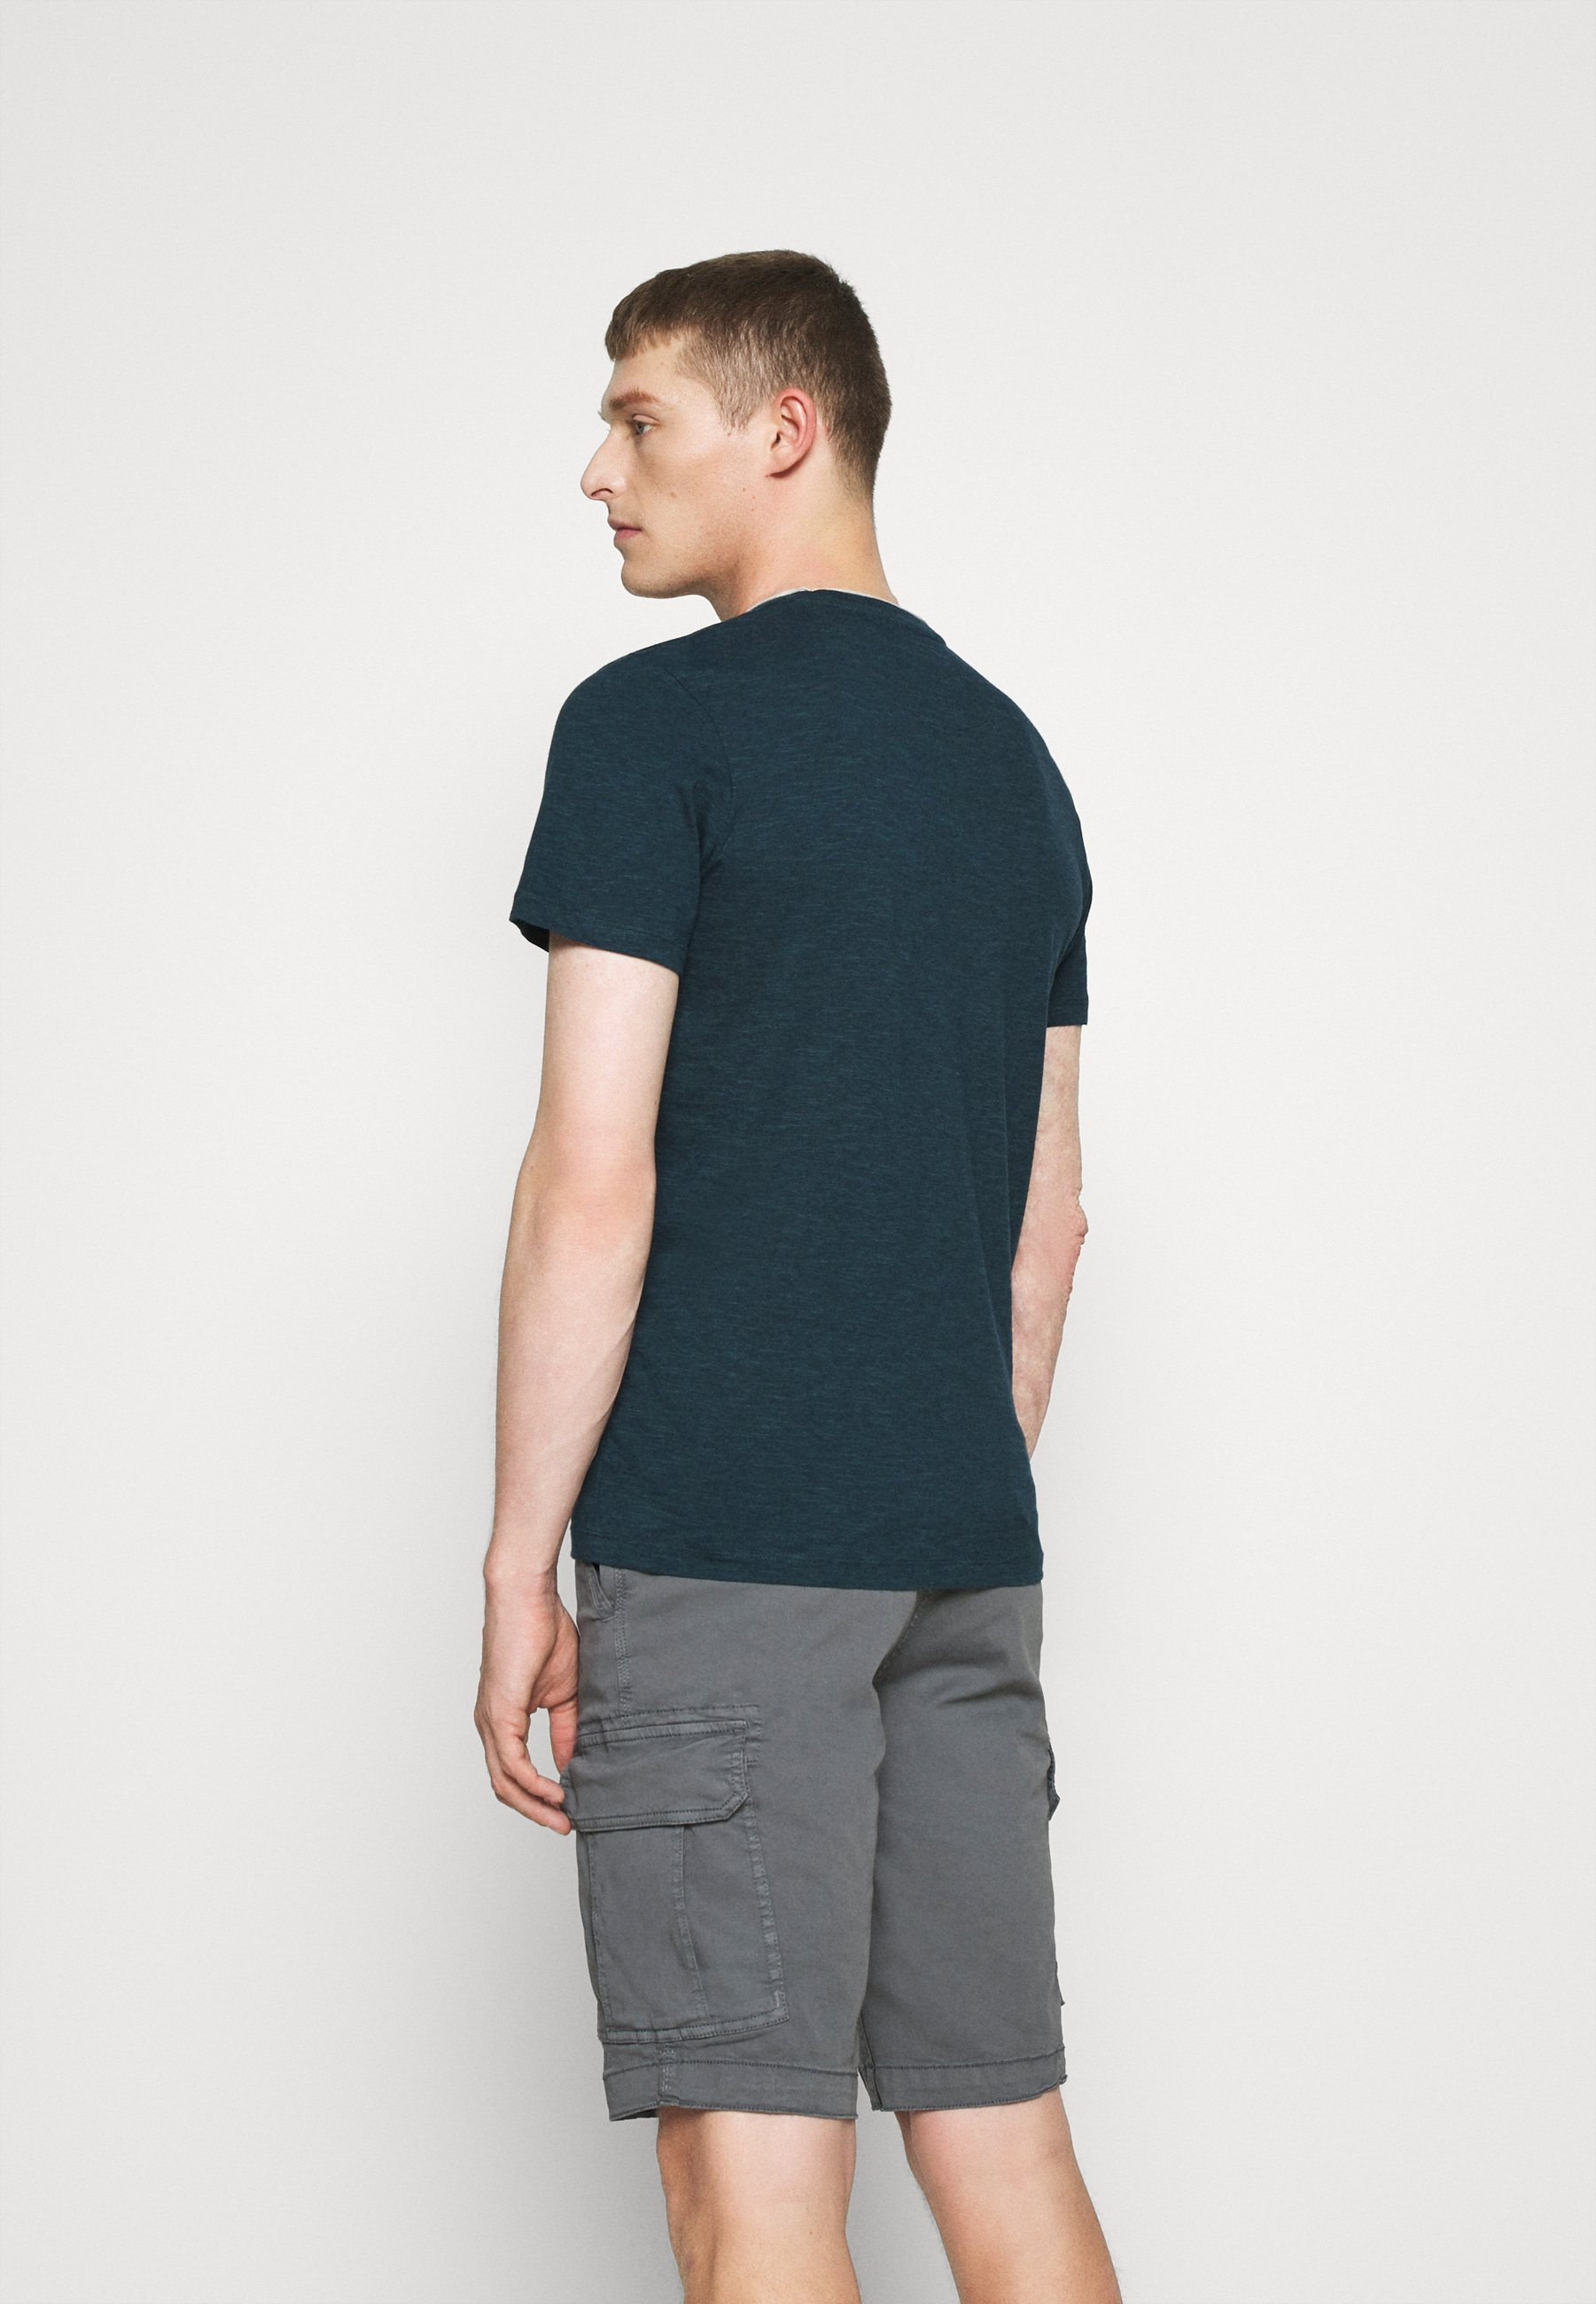 TOM TAILOR FINELINER WITH POCKET - Print T-shirt - dark green m1puL